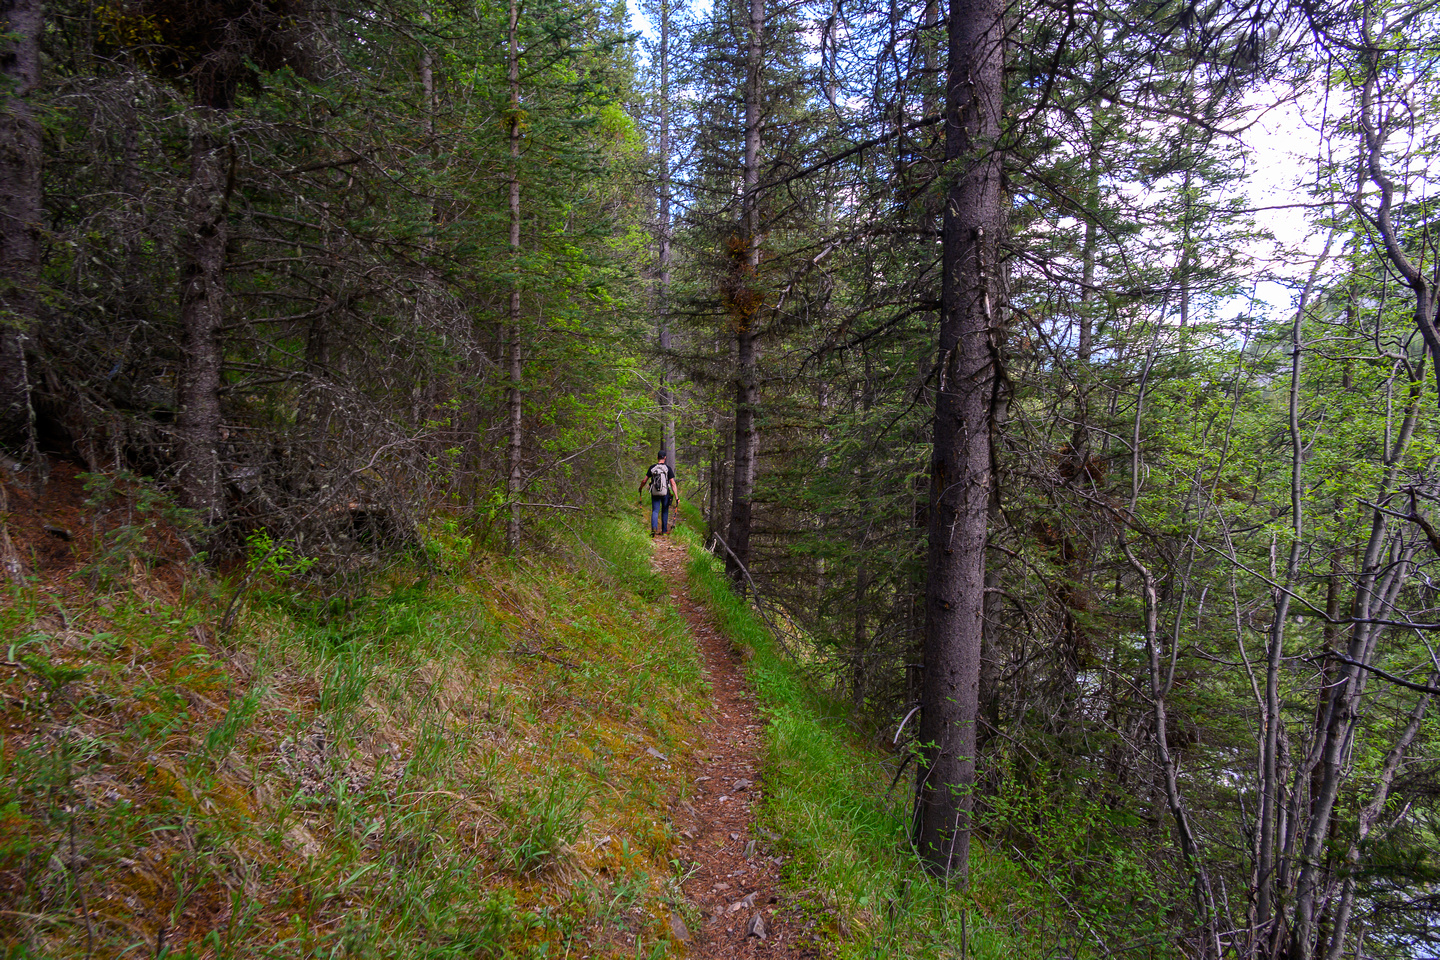 Hiking the Dormer River / Pass Trail.